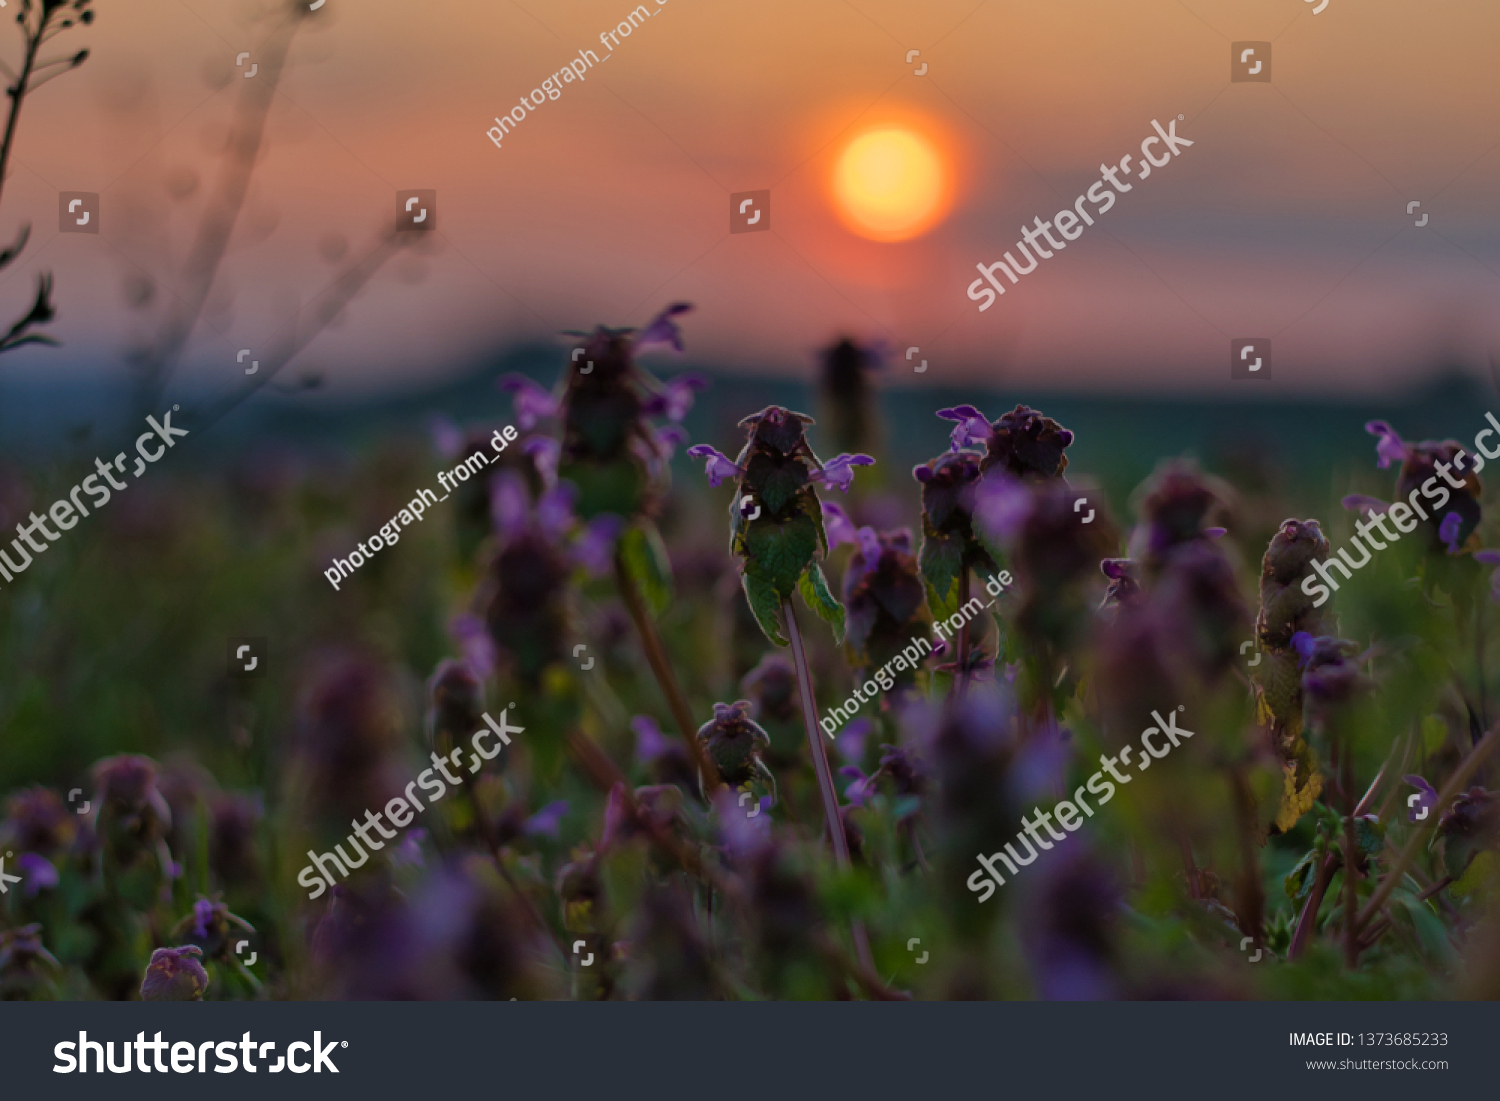 Sunset Field Purple Flowers Stock Photo Edit Now 1373685233